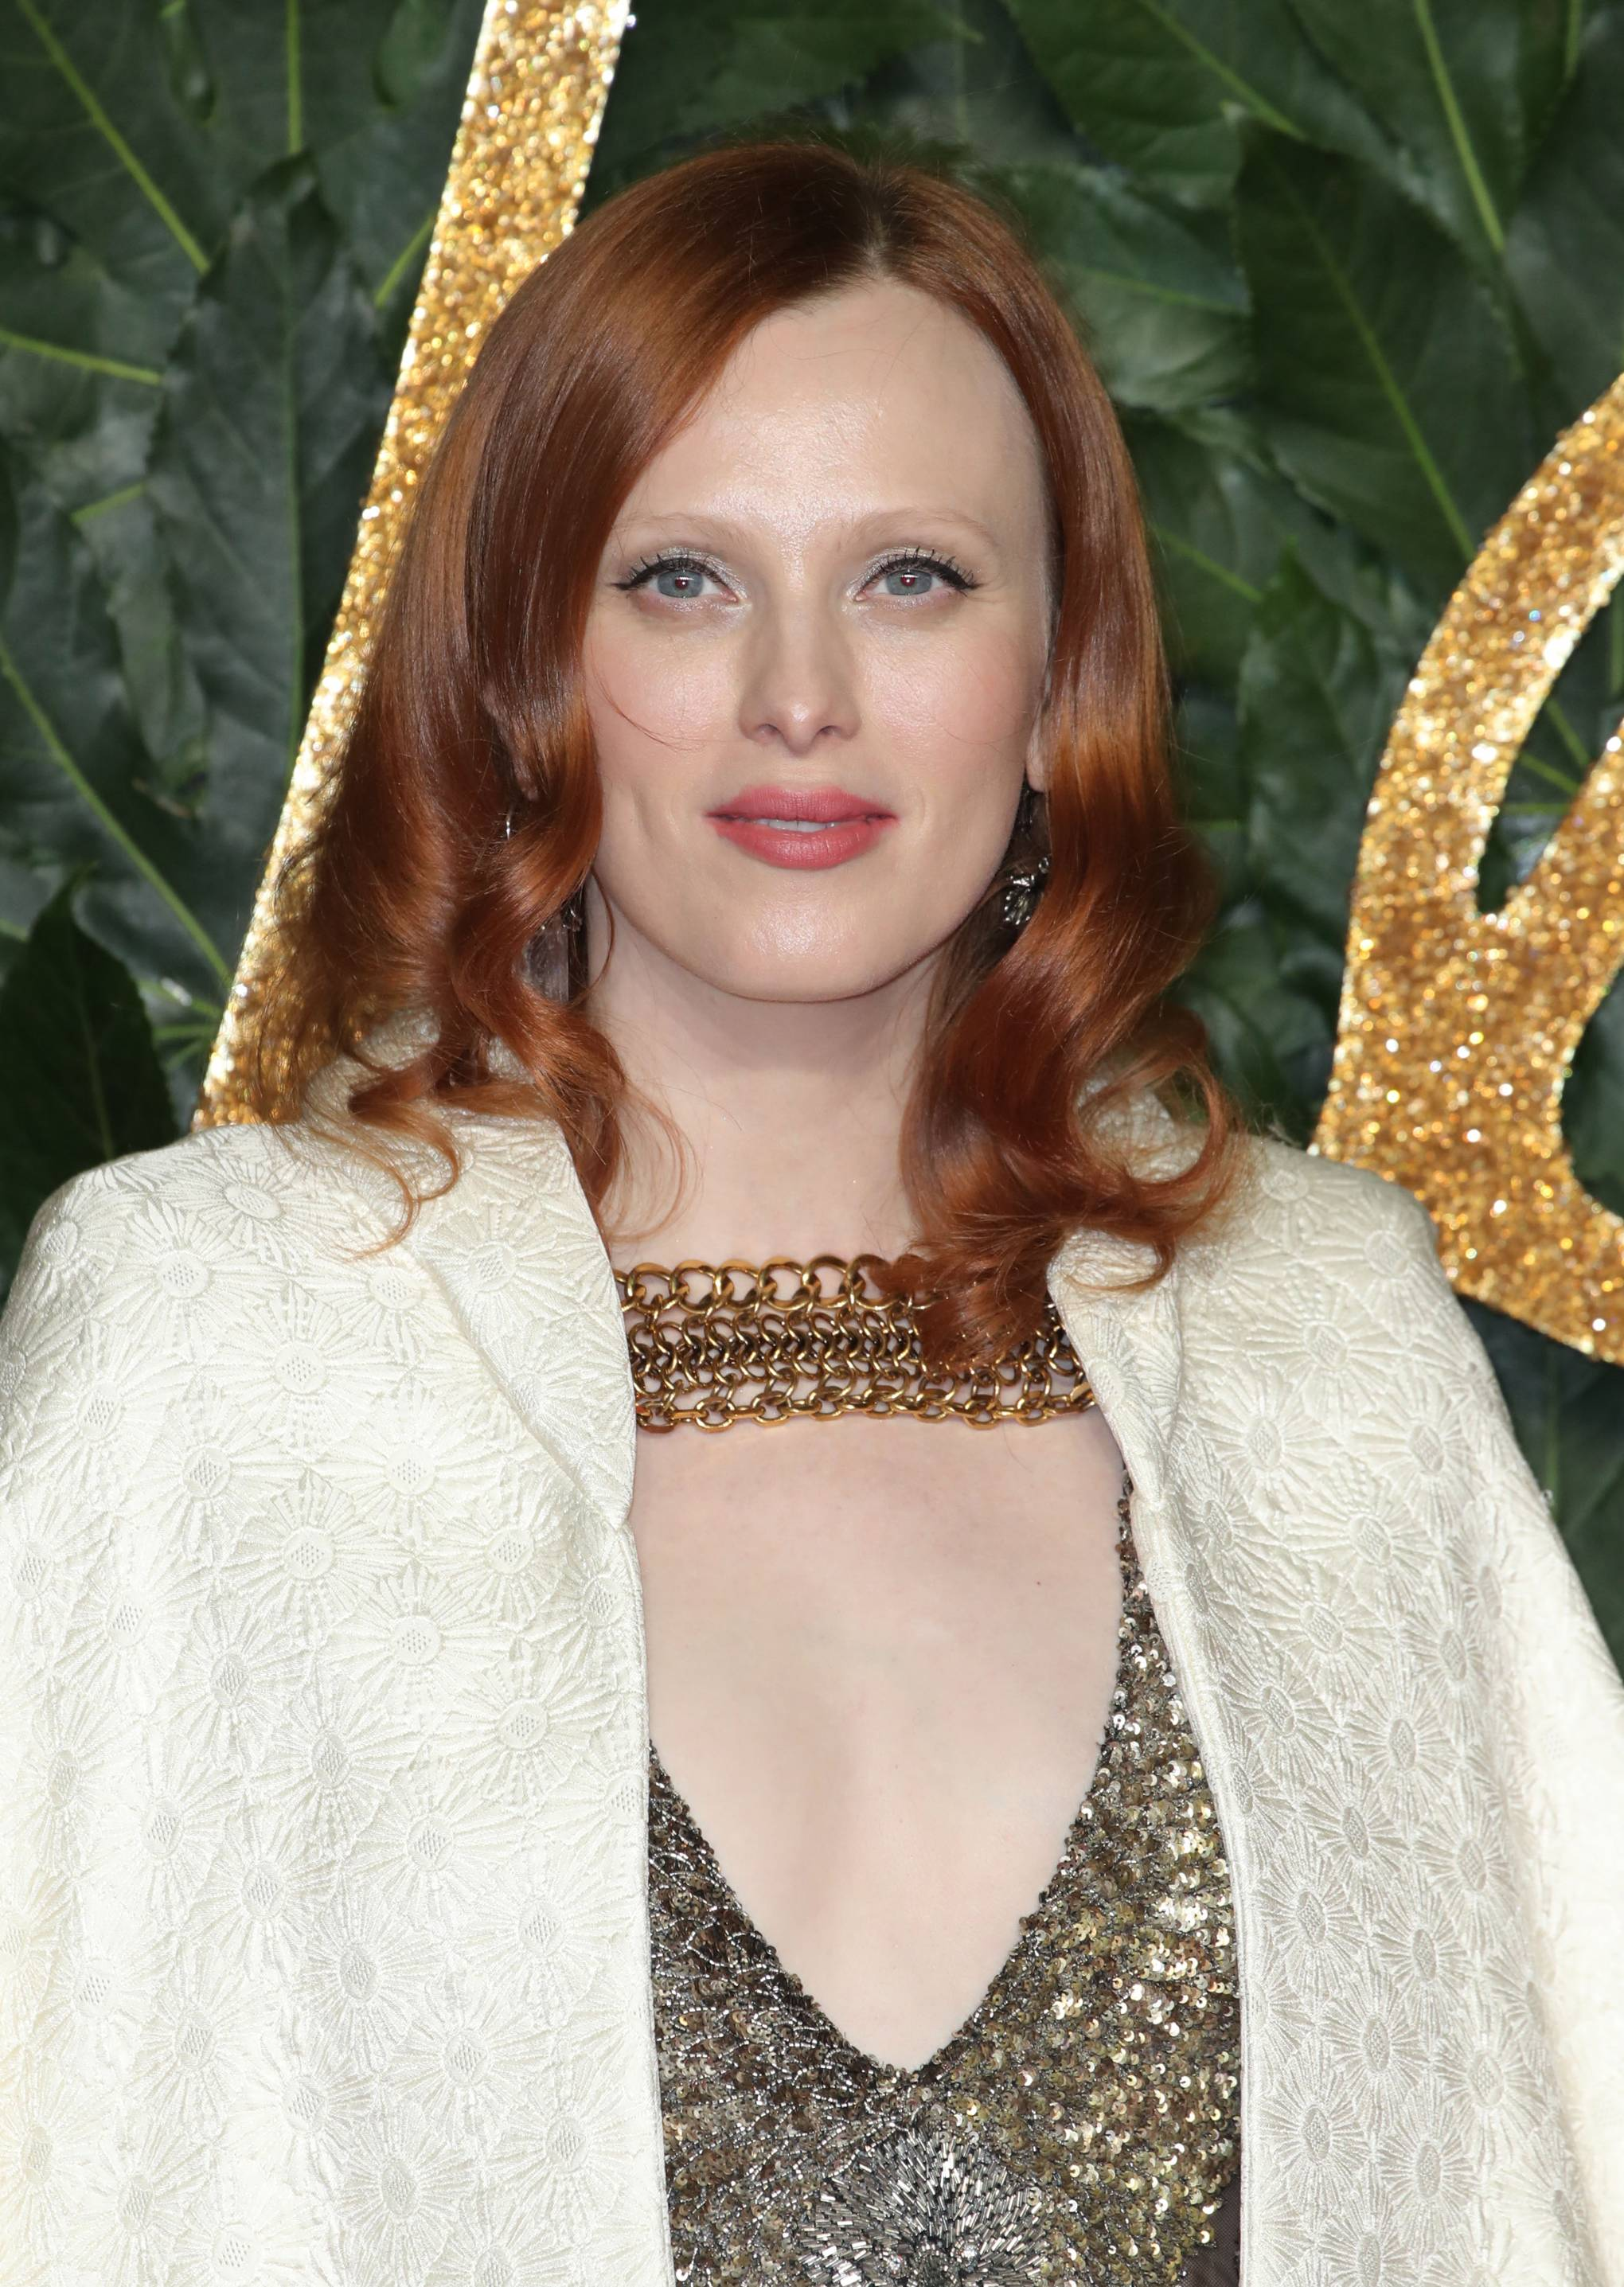 Karen Elson nudes (48 gallery), Is a cute Pussy, Twitter, cleavage 2020